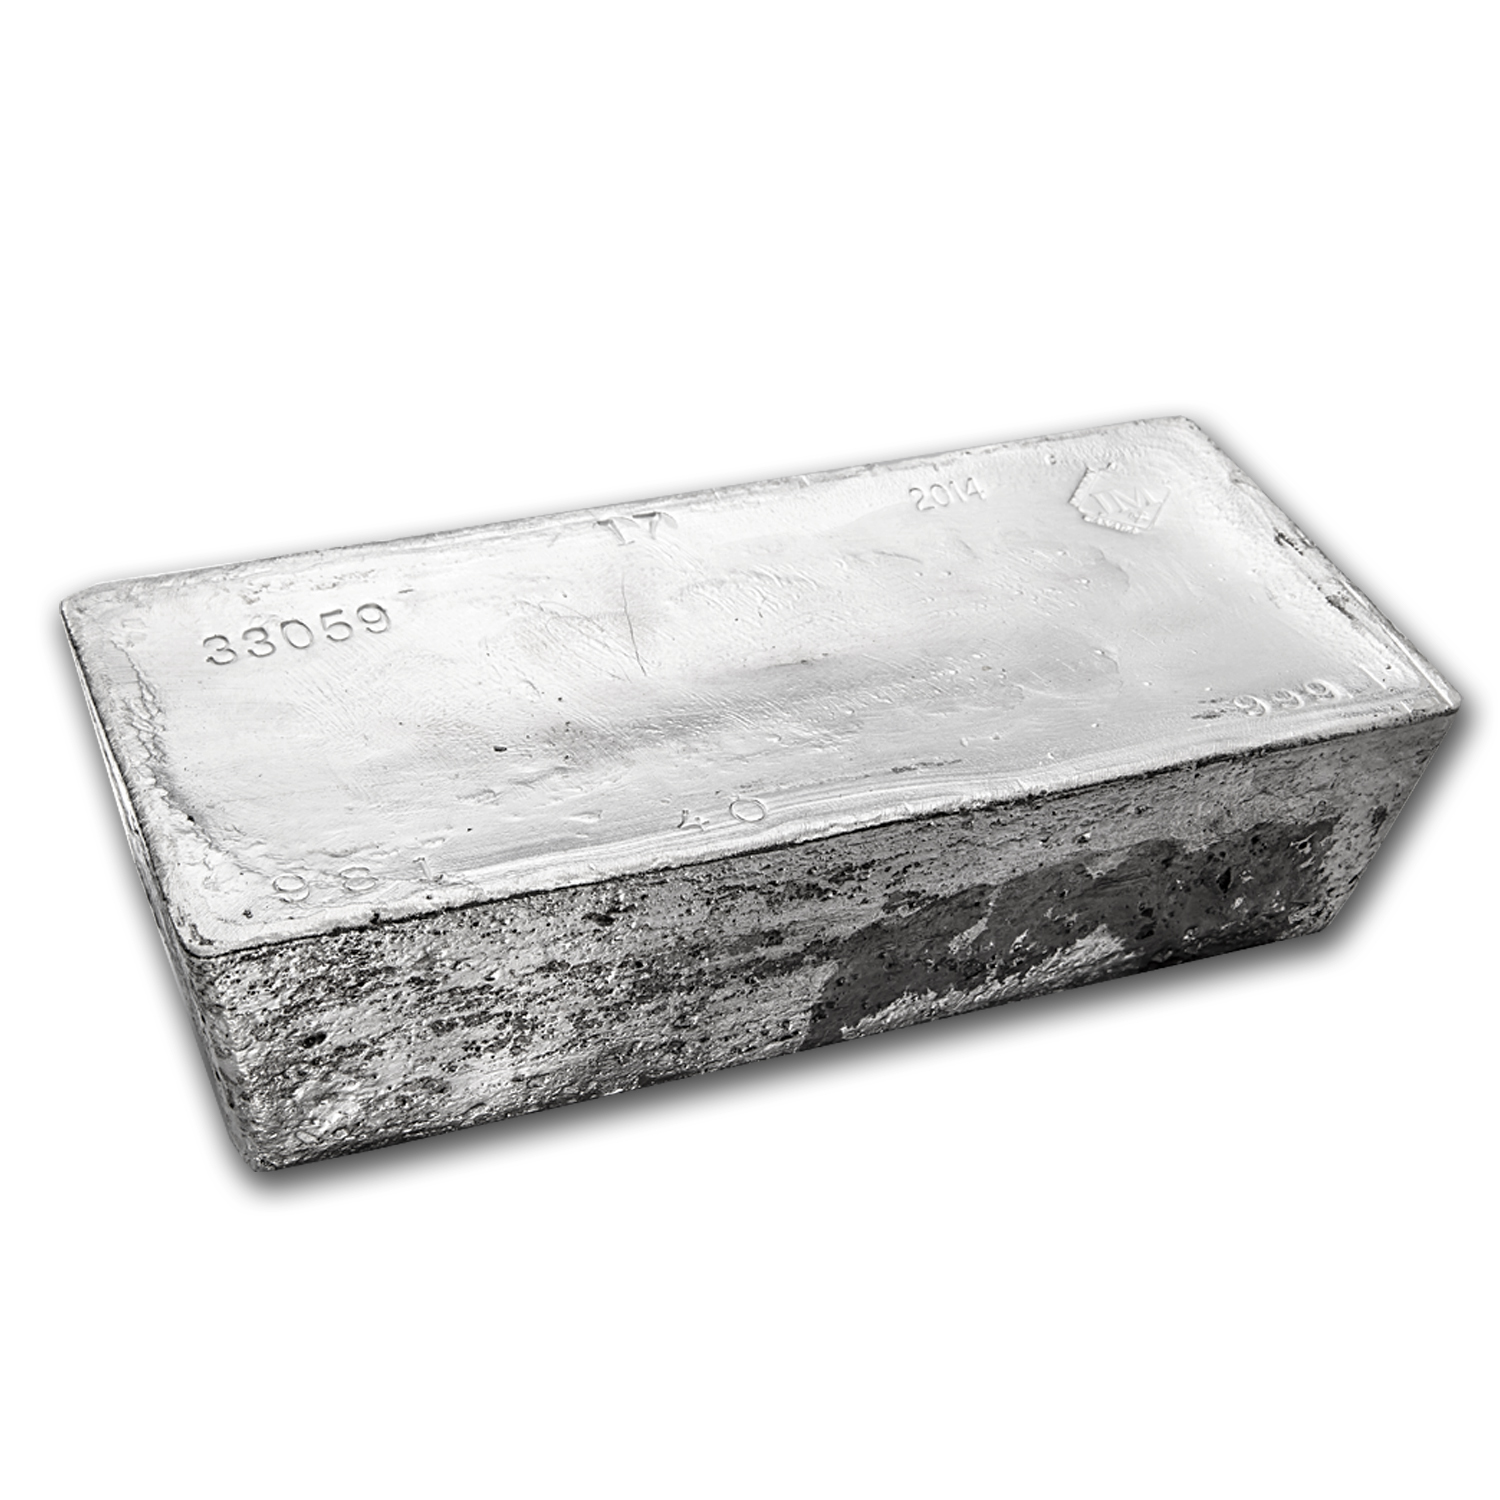 980.60 oz Silver Bar - Johnson Matthey